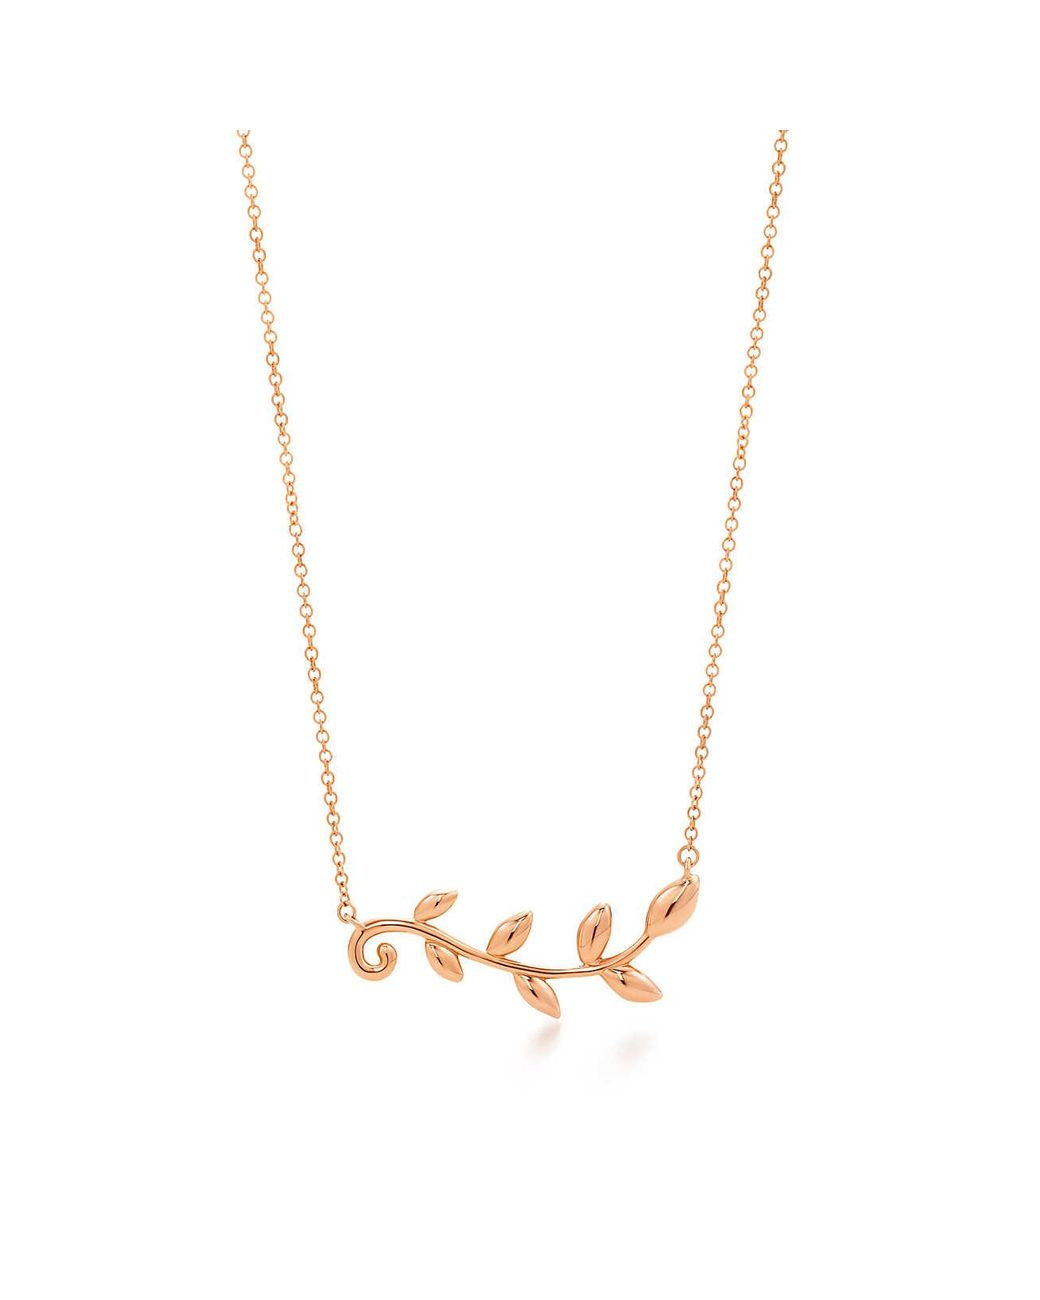 da7125f11 Tiffany Olive Leaf Necklace Gold - The Gold Picture